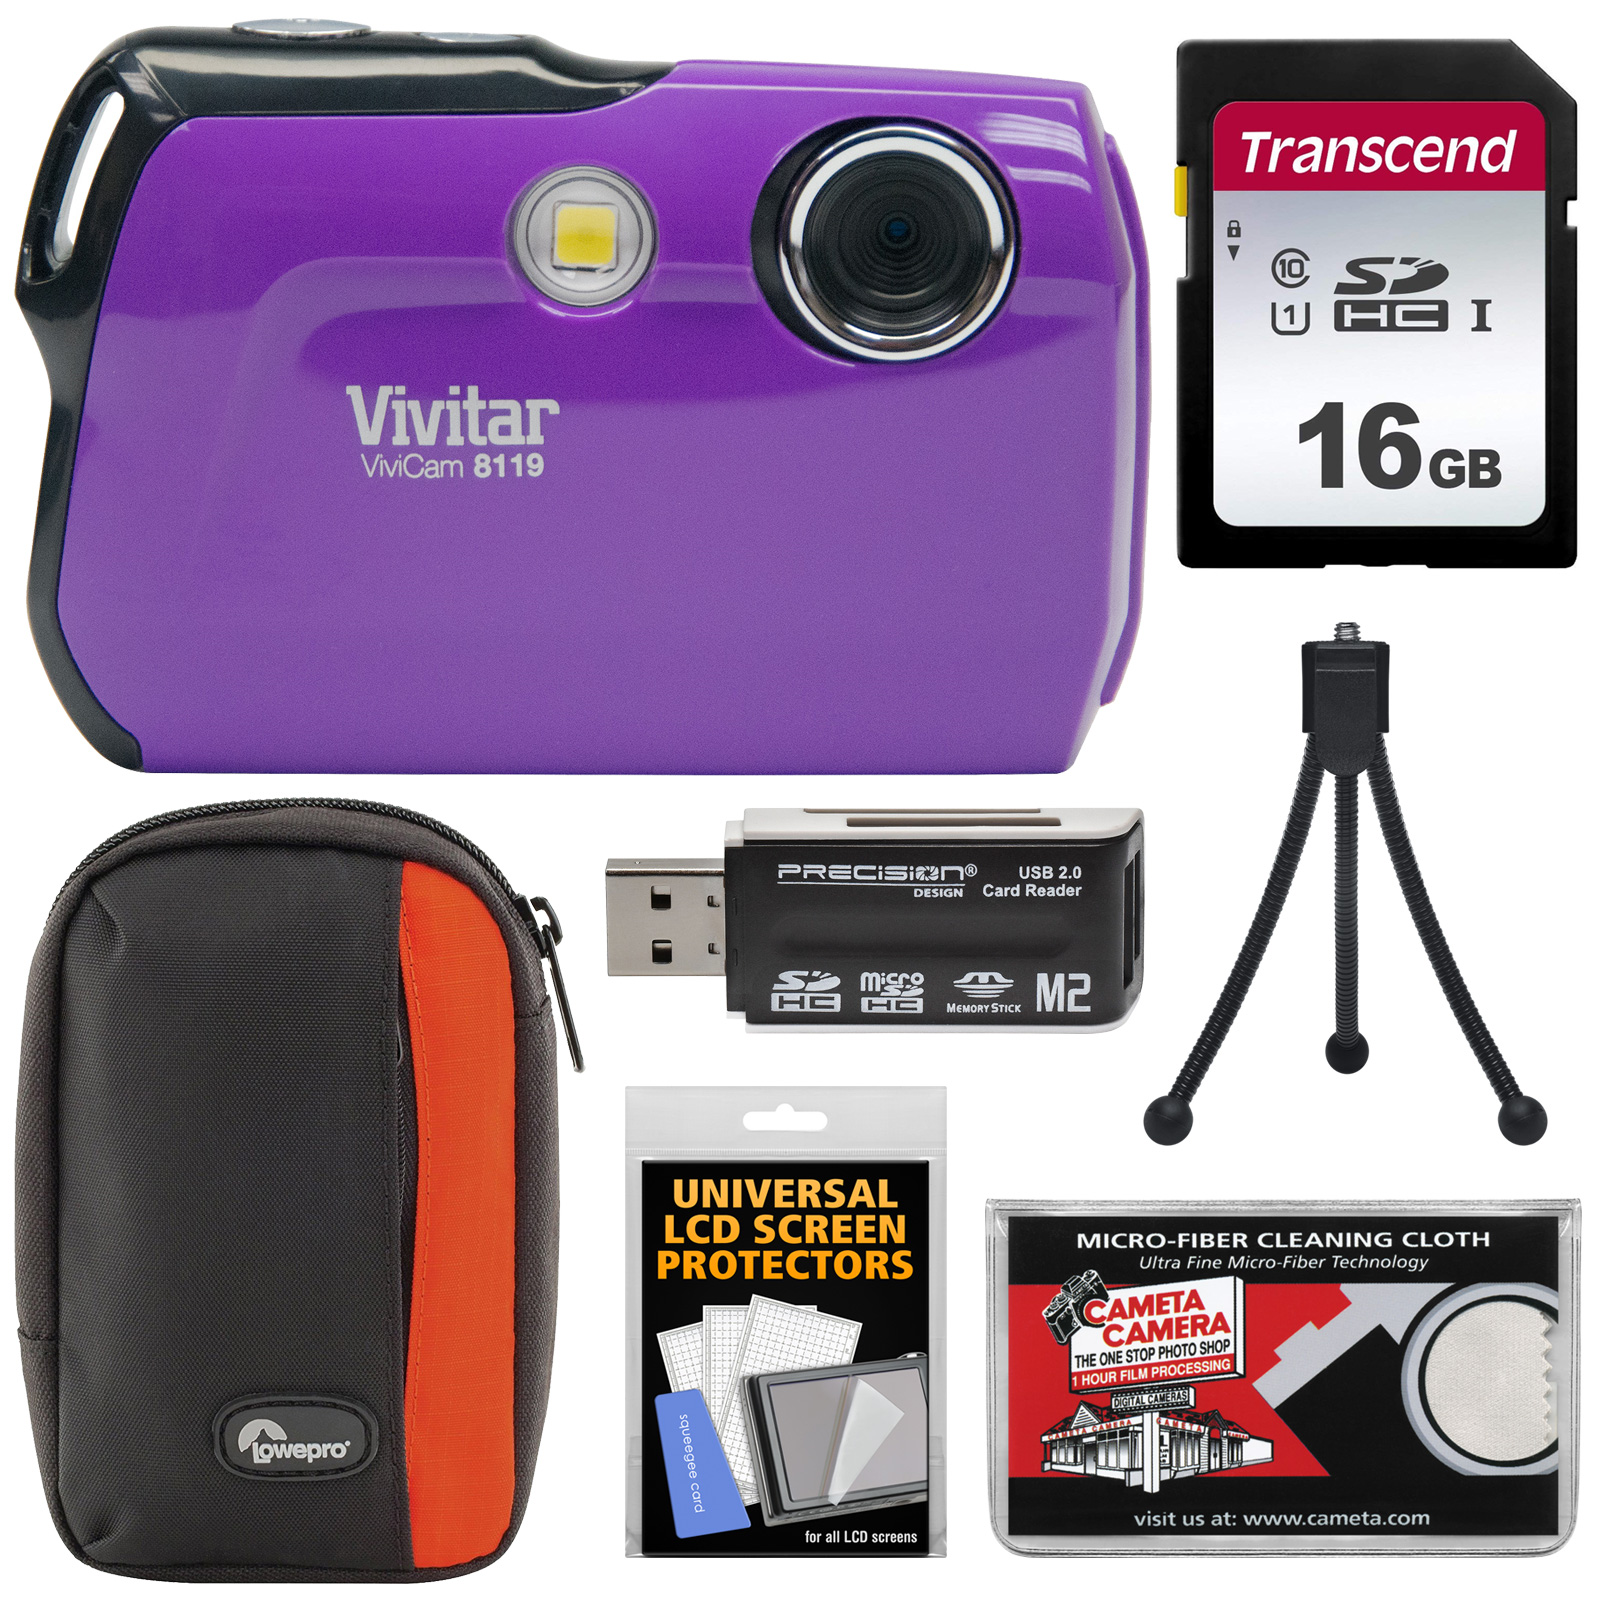 Vivitar ViviCam 8119 Digital Camera (Purple) with 16GB Card + Case + Reader + Tripod + Kit